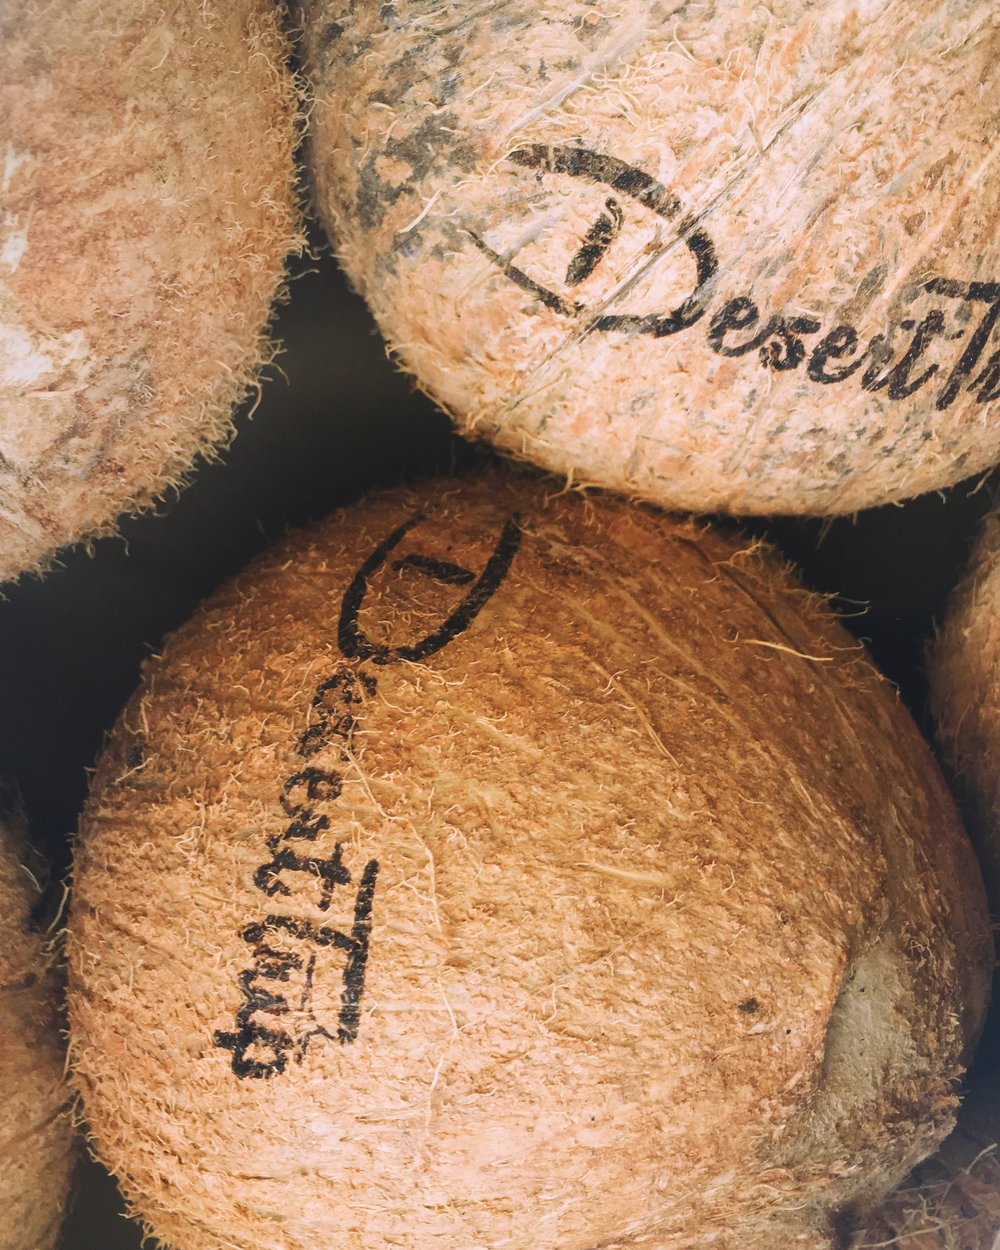 YOUR COCONUTS ARE THEN BOXED AND SHIPPED IN REFRIGERATED TRUCKS TO YOUR EVENT